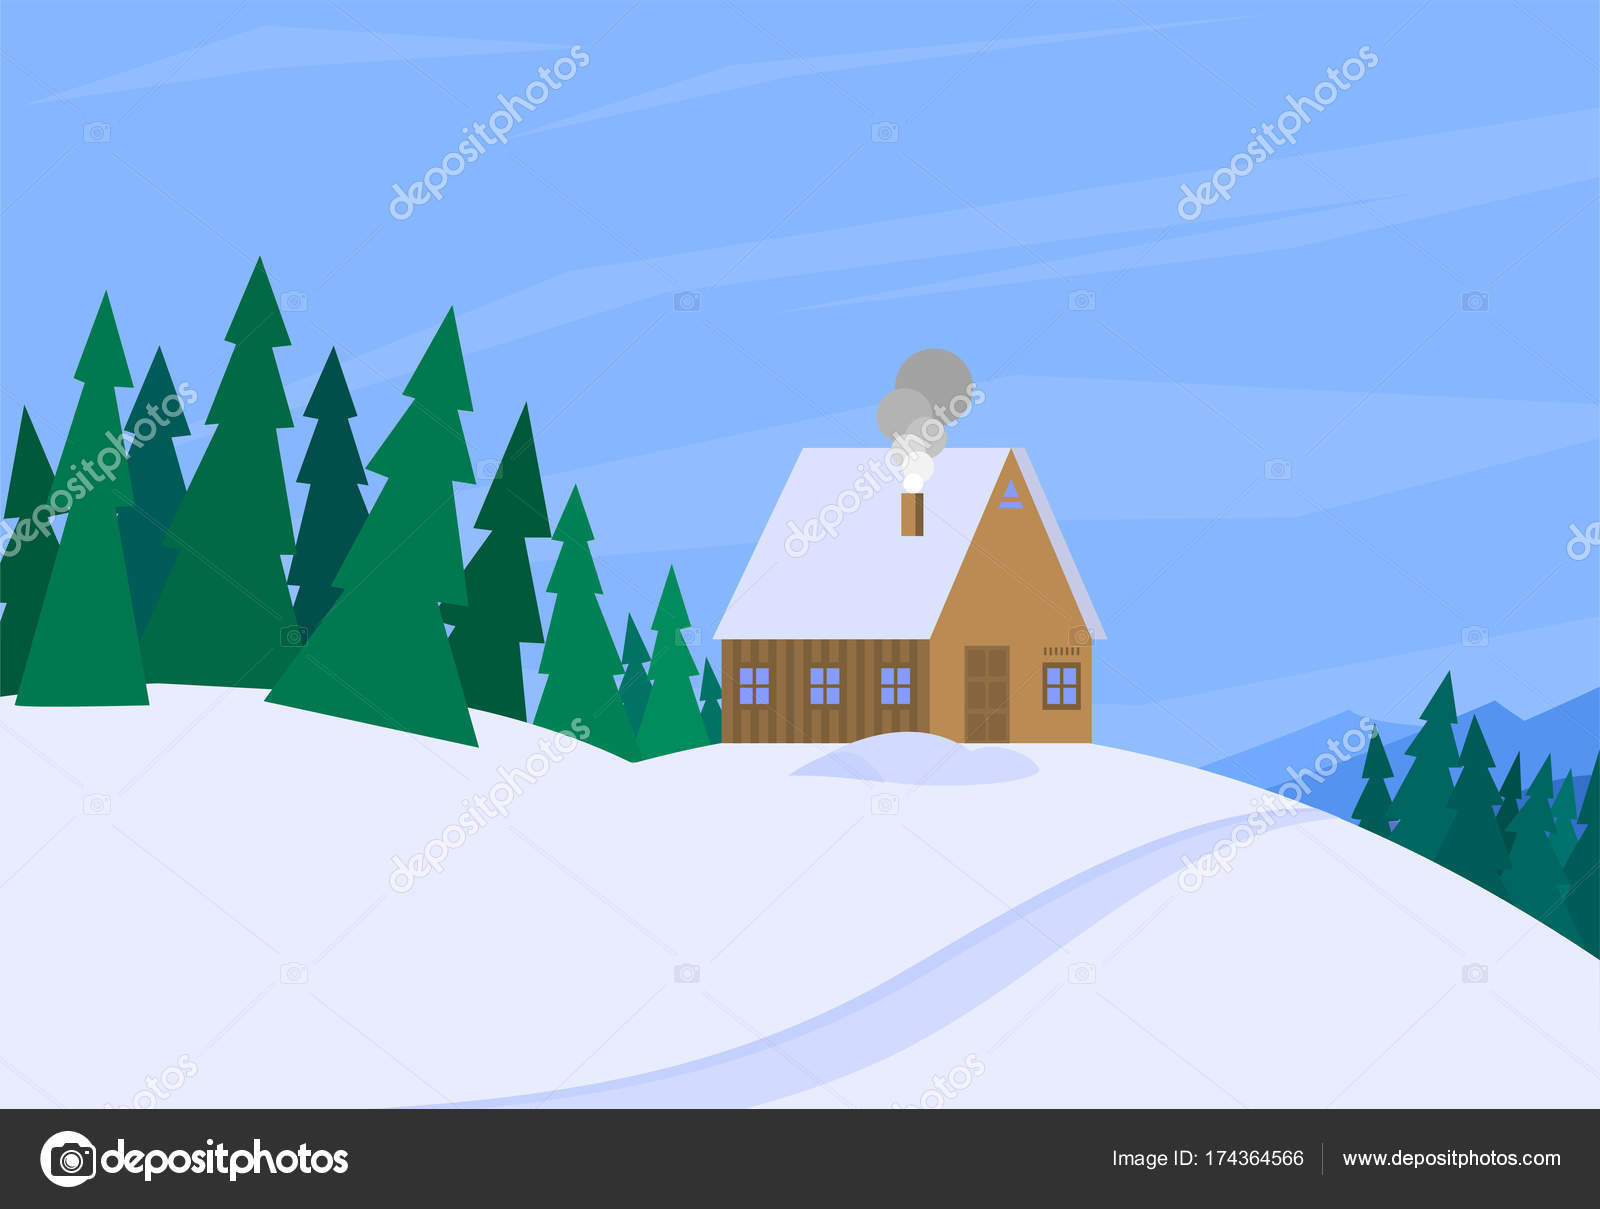 Winter Landscape With Christmas Tree Mountain Frozen Nature Wallpaper Beautiful Natural Vector Illustration Vector Image By C Vectorshow Vector Stock 174364566